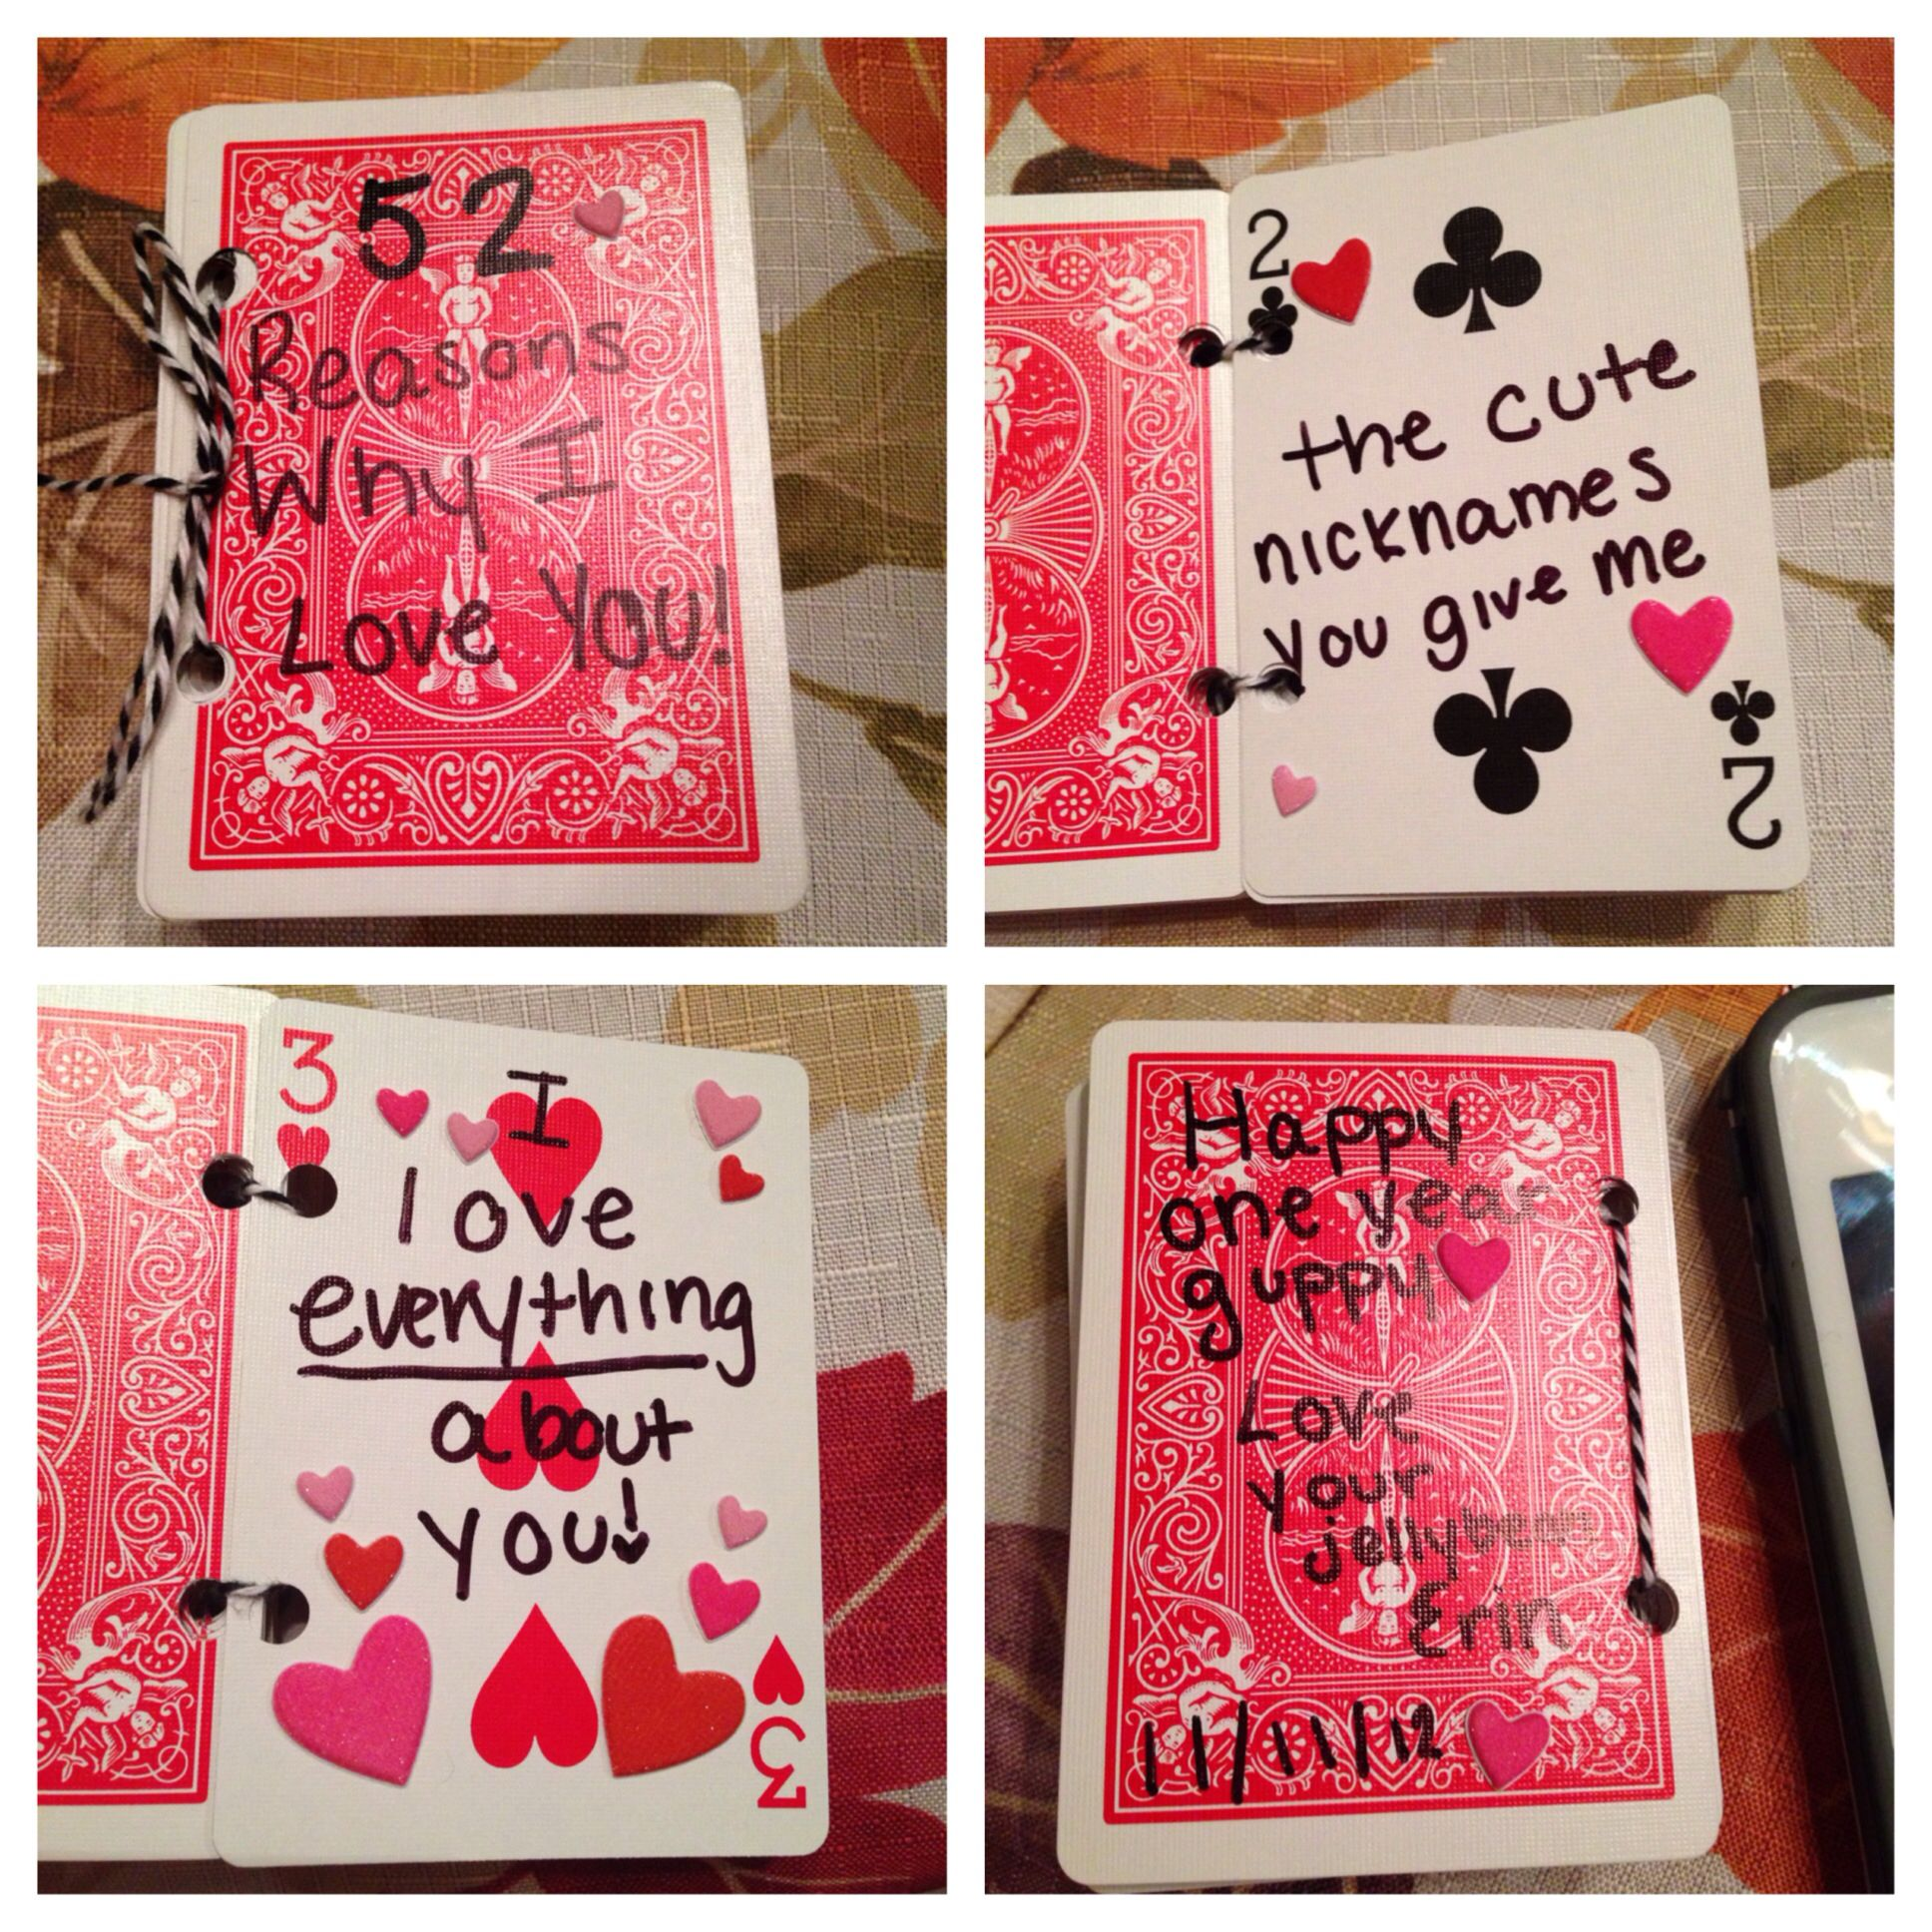 52 Reasons Why I Love You Diy Gifts Anniversary